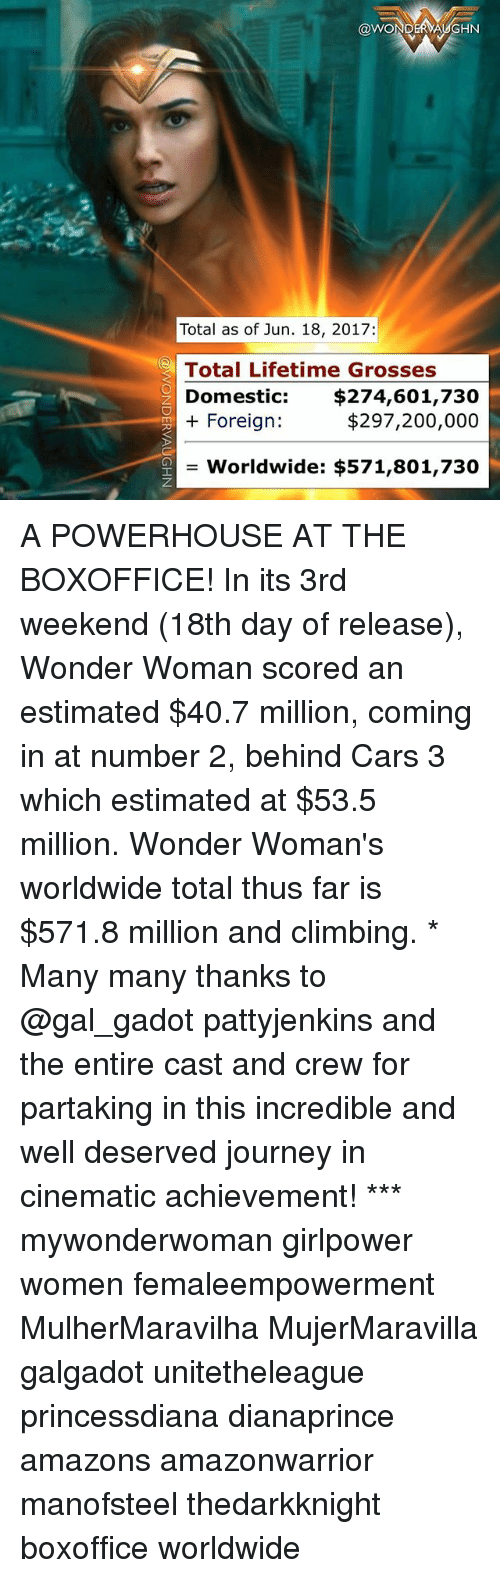 Bailey Jay, Cars, and Climbing: COWONDERVAUGHN  Total as of Jun. 18, 2017:  Total Lifetime Grosses  Domestic  $274,601,730  $297,200,000  Foreign  Worldwide: $571,801,730 A POWERHOUSE AT THE BOXOFFICE! In its 3rd weekend (18th day of release), Wonder Woman scored an estimated $40.7 million, coming in at number 2, behind Cars 3 which estimated at $53.5 million. Wonder Woman's worldwide total thus far is $571.8 million and climbing. * Many many thanks to @gal_gadot pattyjenkins and the entire cast and crew for partaking in this incredible and well deserved journey in cinematic achievement! *** mywonderwoman girlpower women femaleempowerment MulherMaravilha MujerMaravilla galgadot unitetheleague princessdiana dianaprince amazons amazonwarrior manofsteel thedarkknight boxoffice worldwide